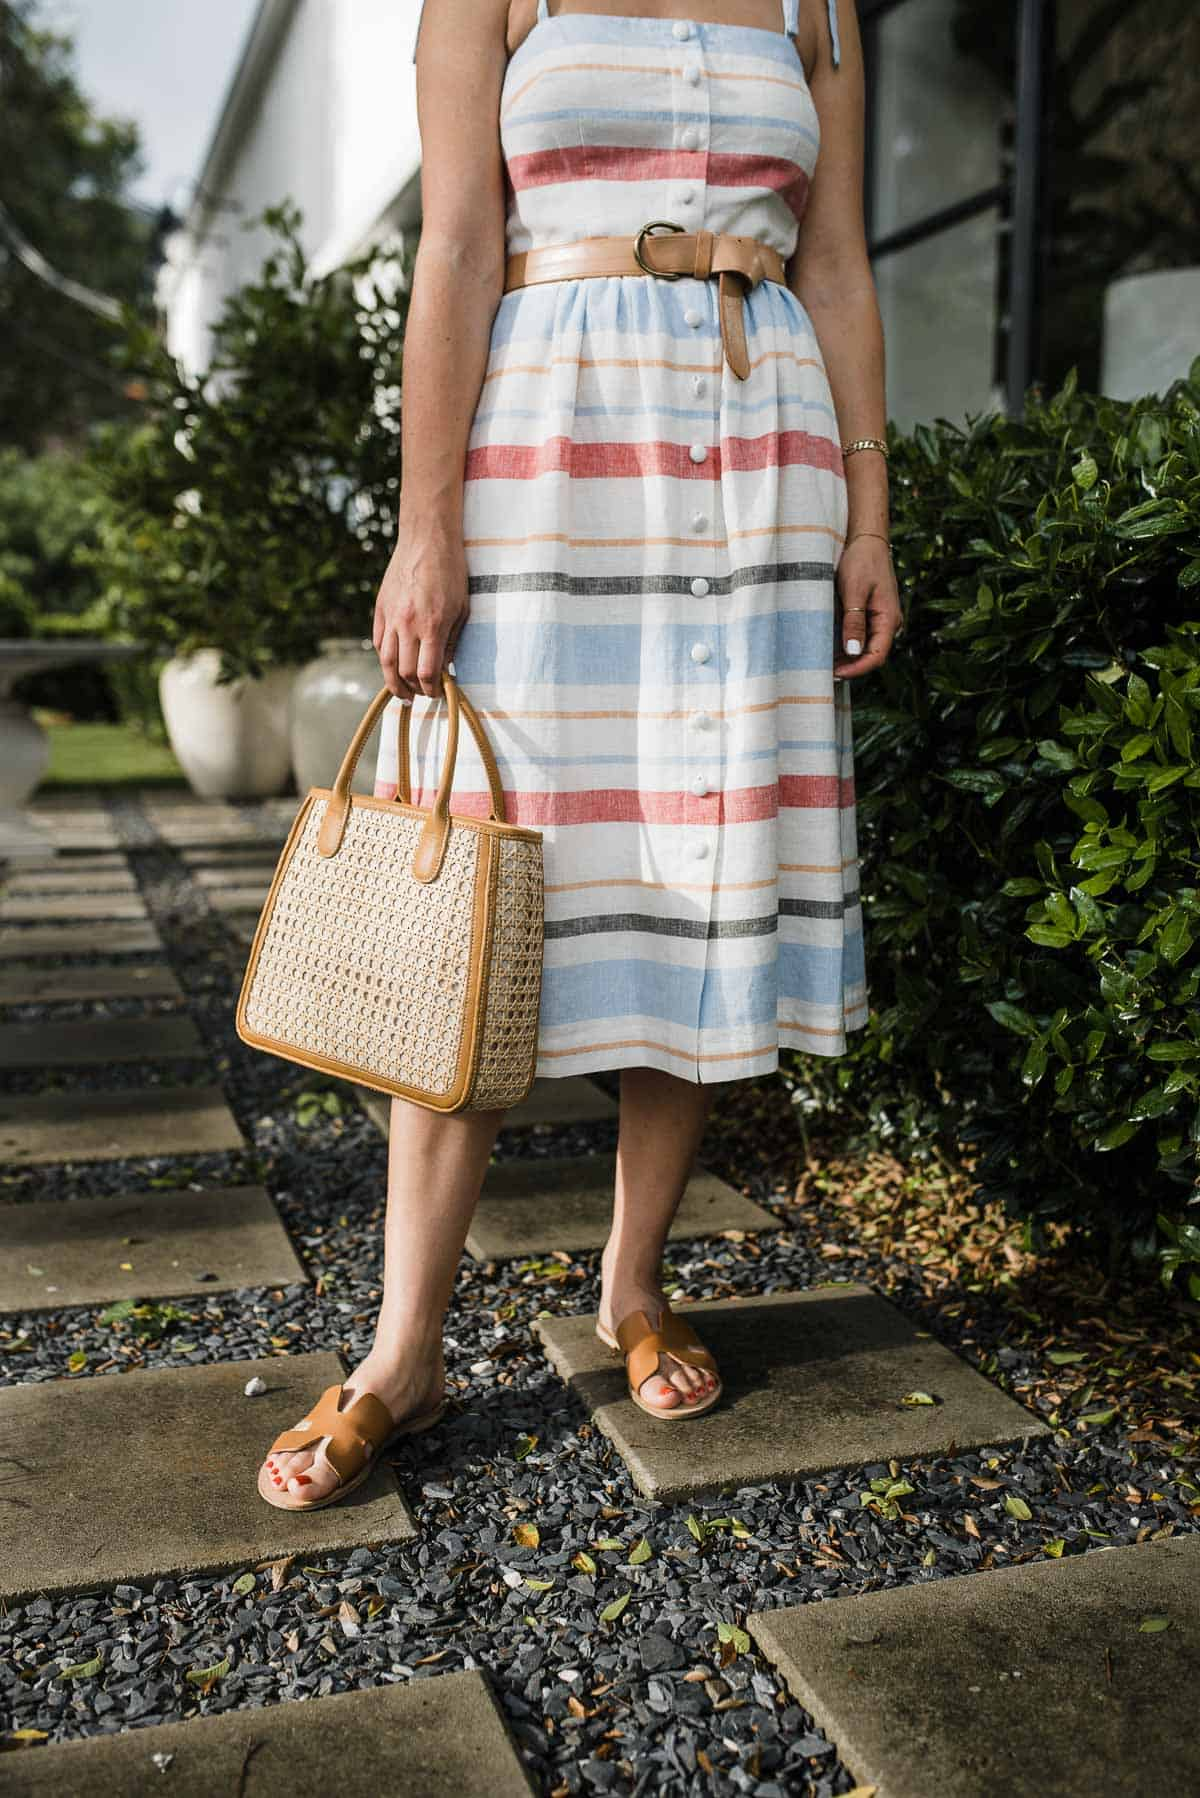 summer dresses from Gal Meets Glam Collection, Straw bag